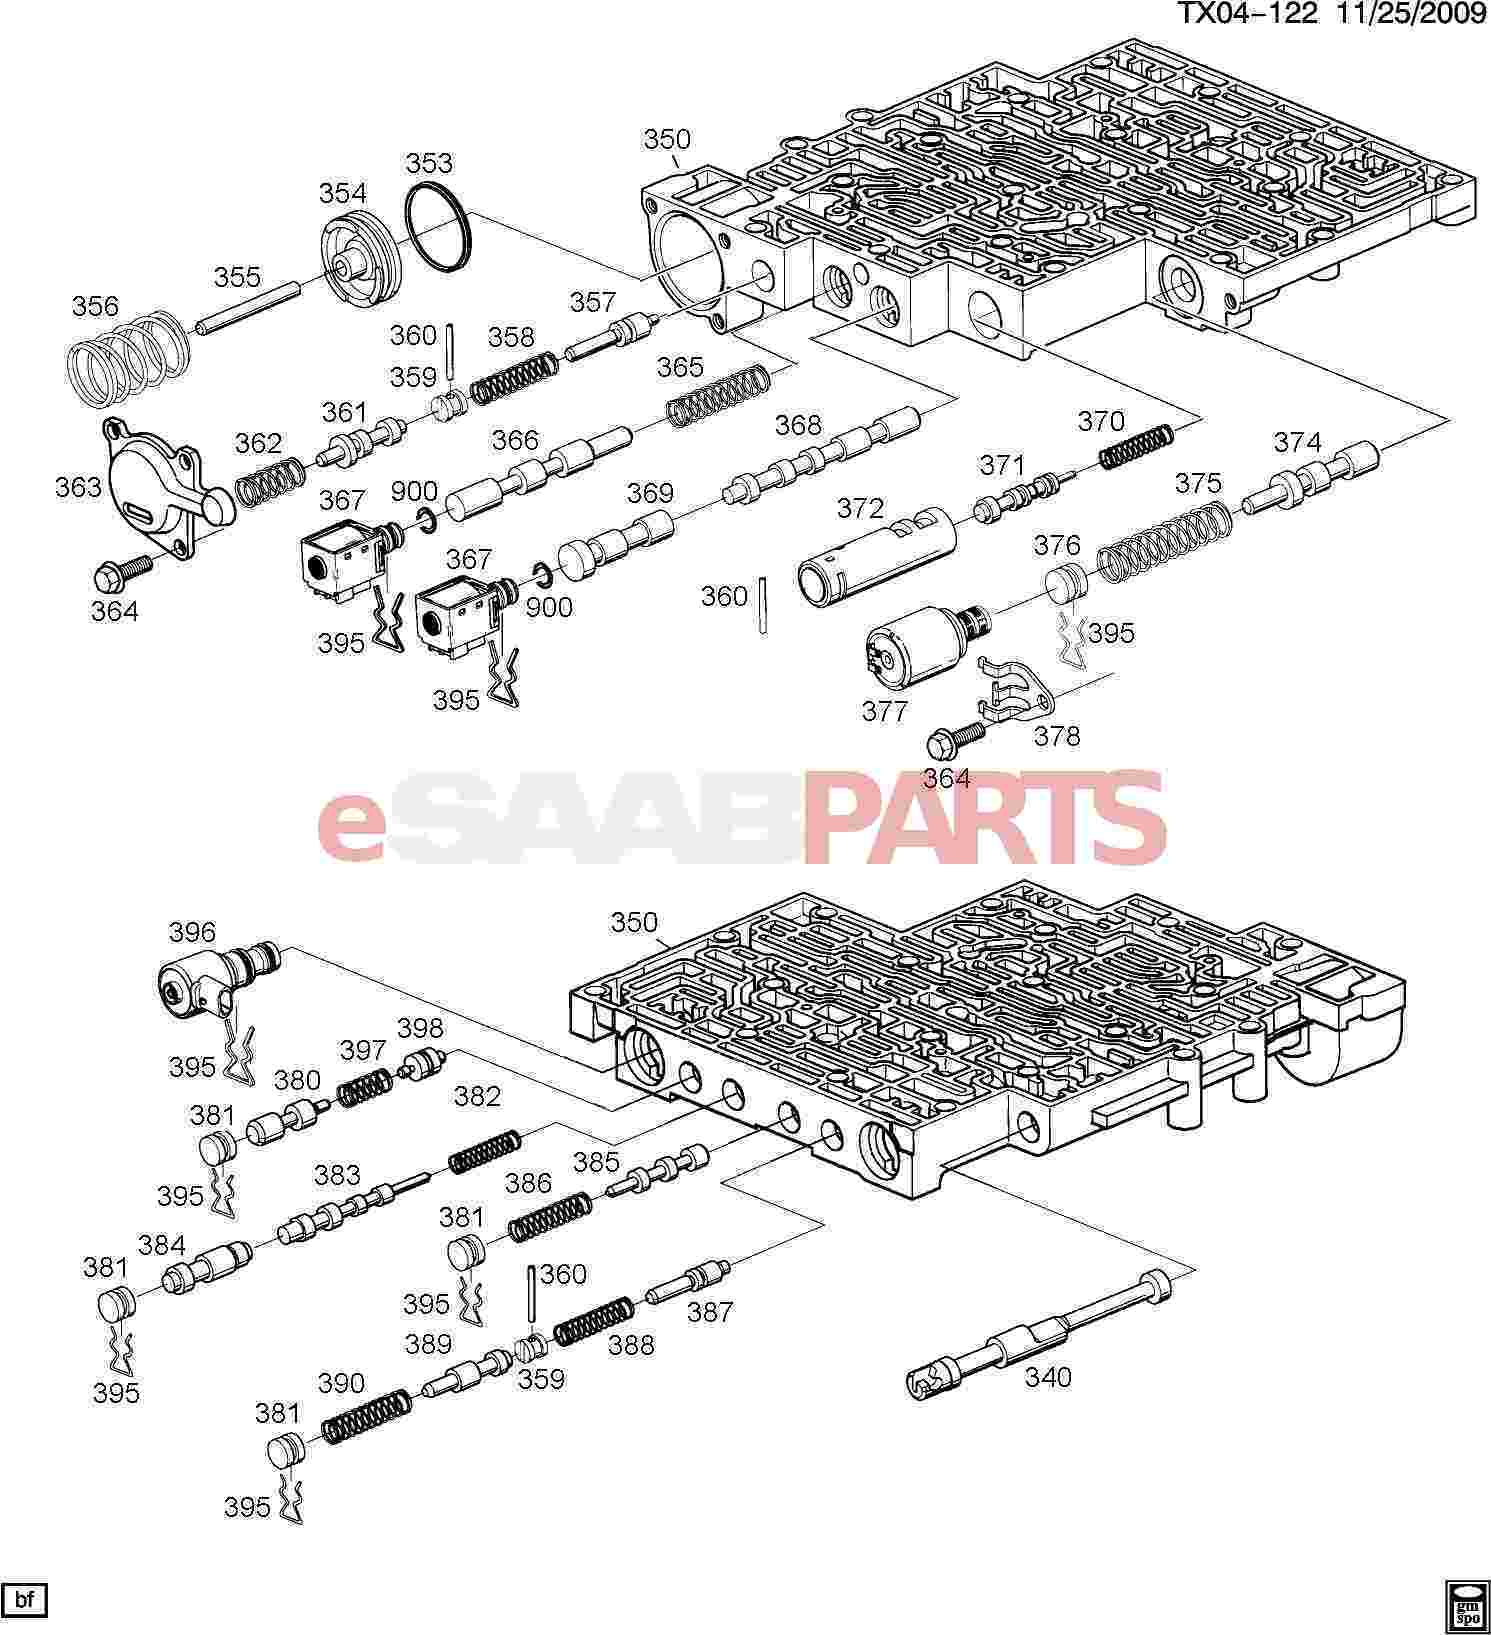 2005 Ford 500 Belt Diagram also 03 Saab 9 3 Fuse Box additionally Saab Transmission Linkage Diagram as well Honda Rancher Fuel Filter Location besides Mercedes W124 Repair Manual. on 2754577 looking vacuum diagram 500sec usa